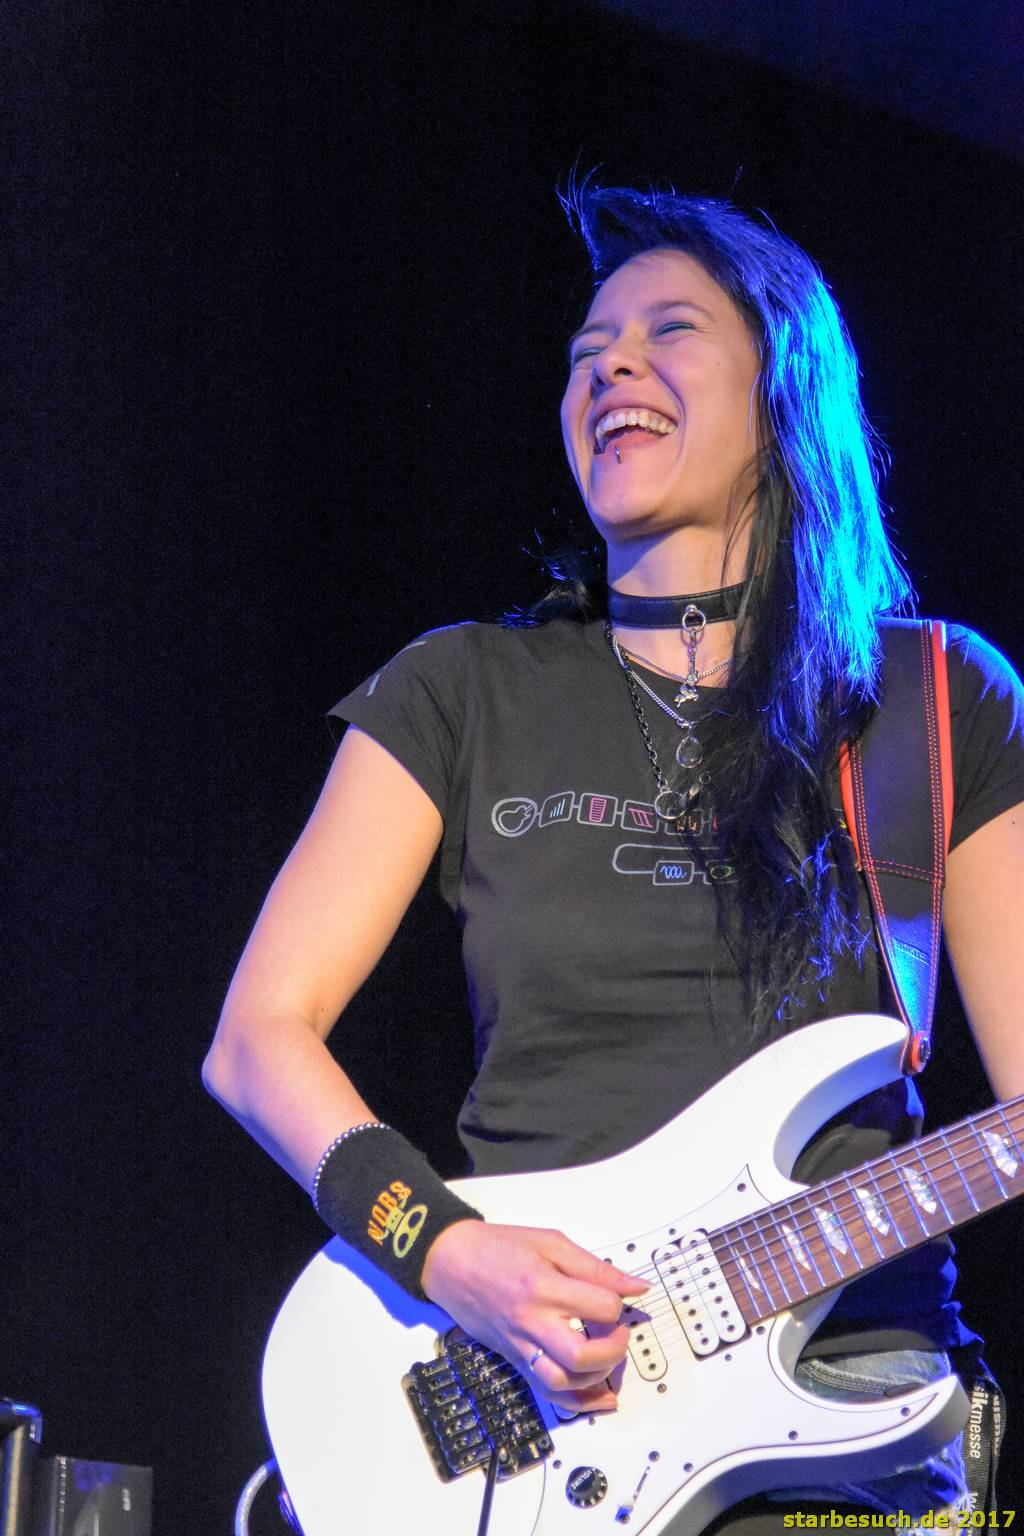 Frankfurt, Germany. 6th April 2017. Jen Majura, guitarist of the band Evanescence, preparing for her gig in the guitar camp at Musikmesse in Frankfurt, Germany